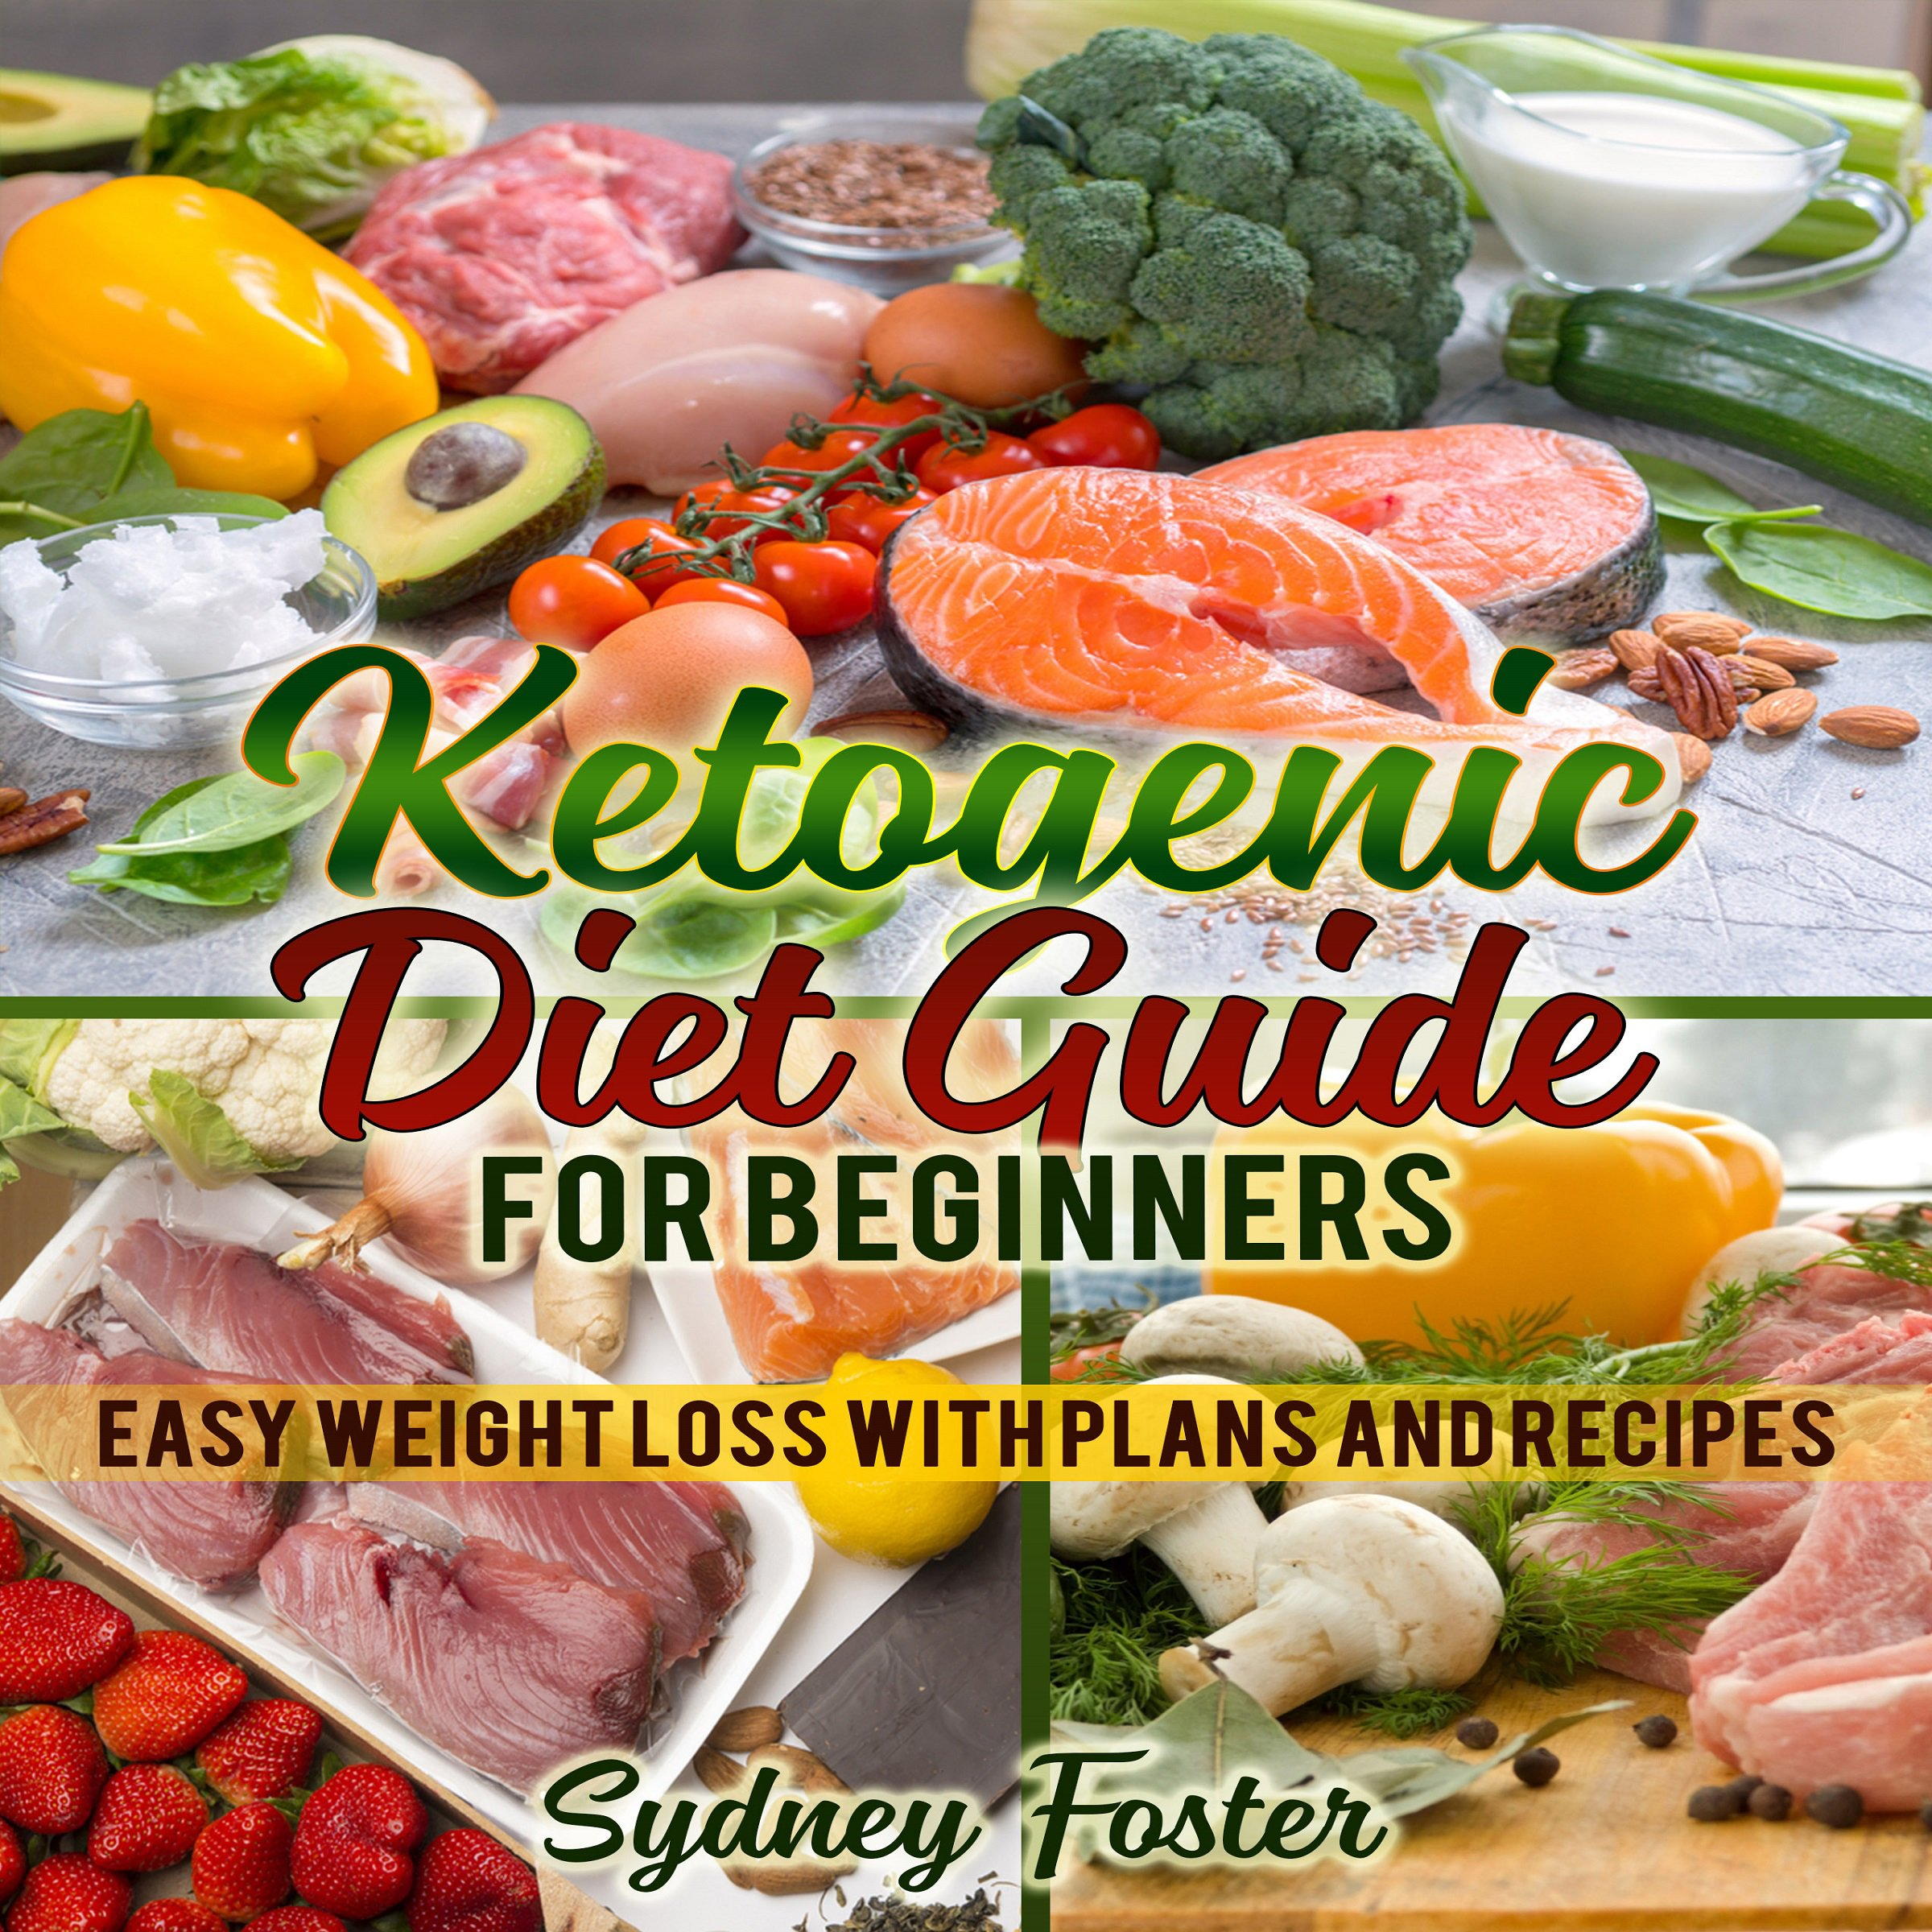 Ketogenic Diet Guide for Beginners: Easy Weight Loss with Plans and Recipes